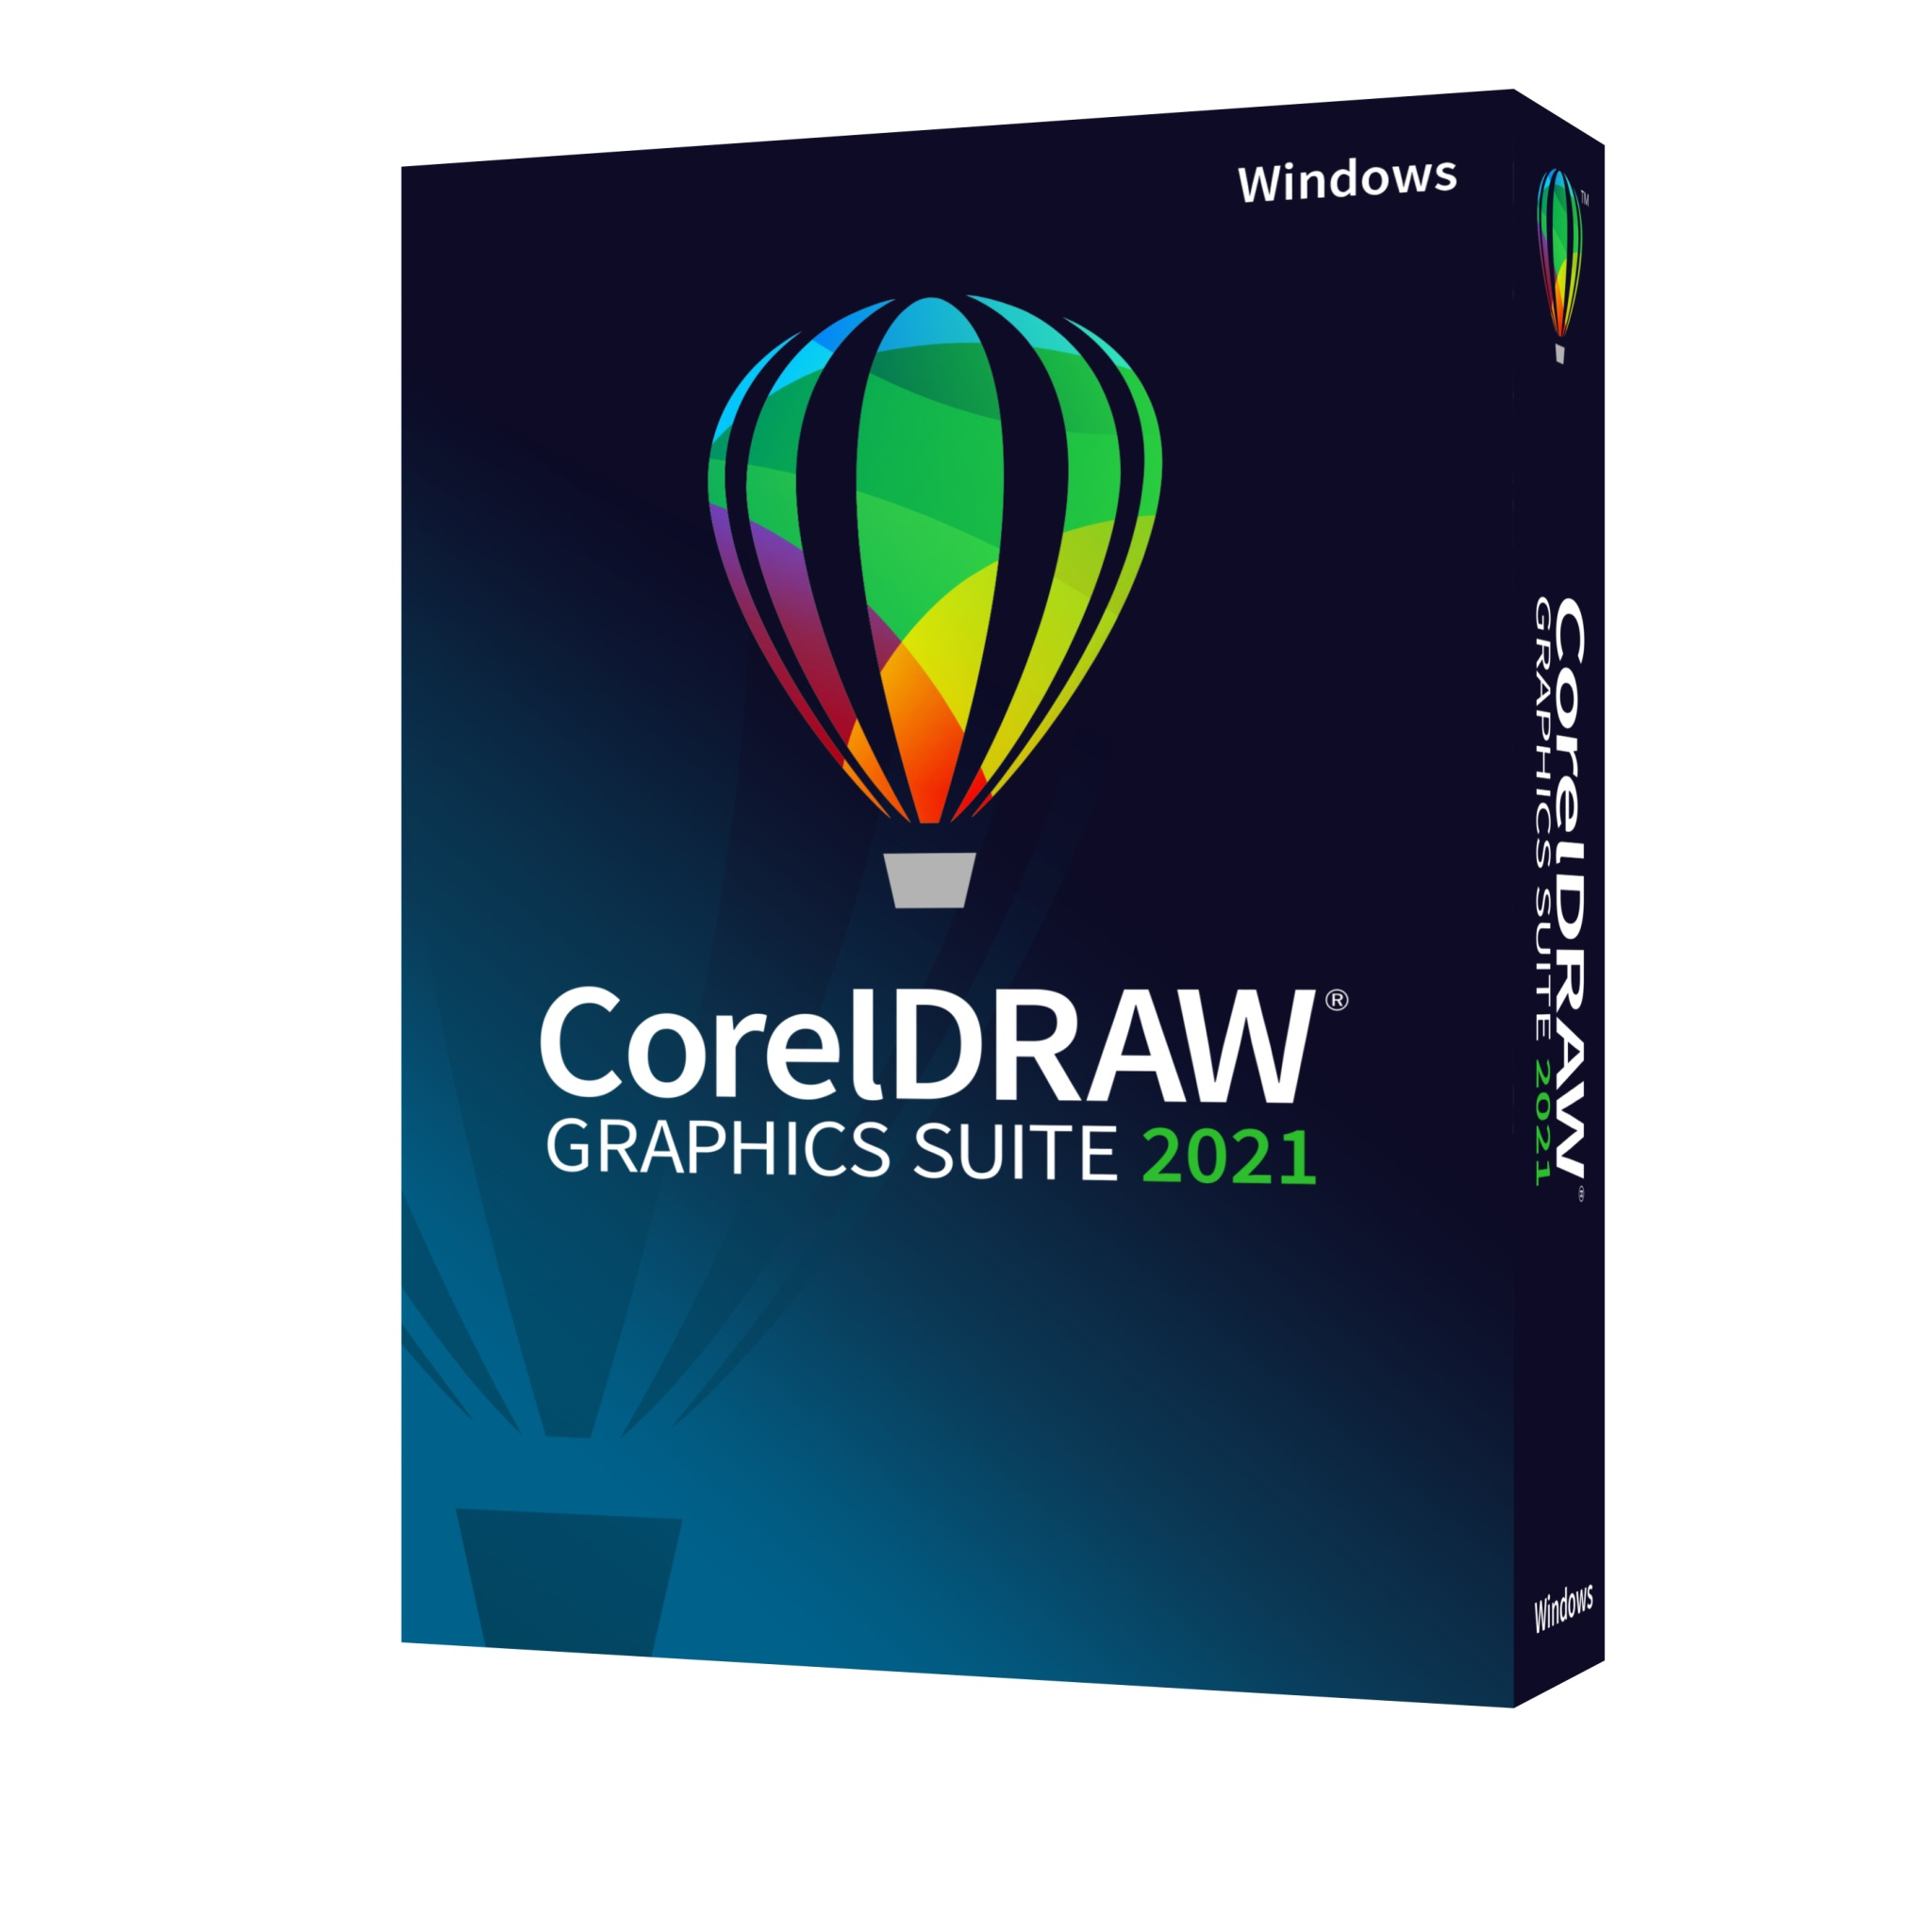 CorelDRAW Graphics Suite 2021 Win